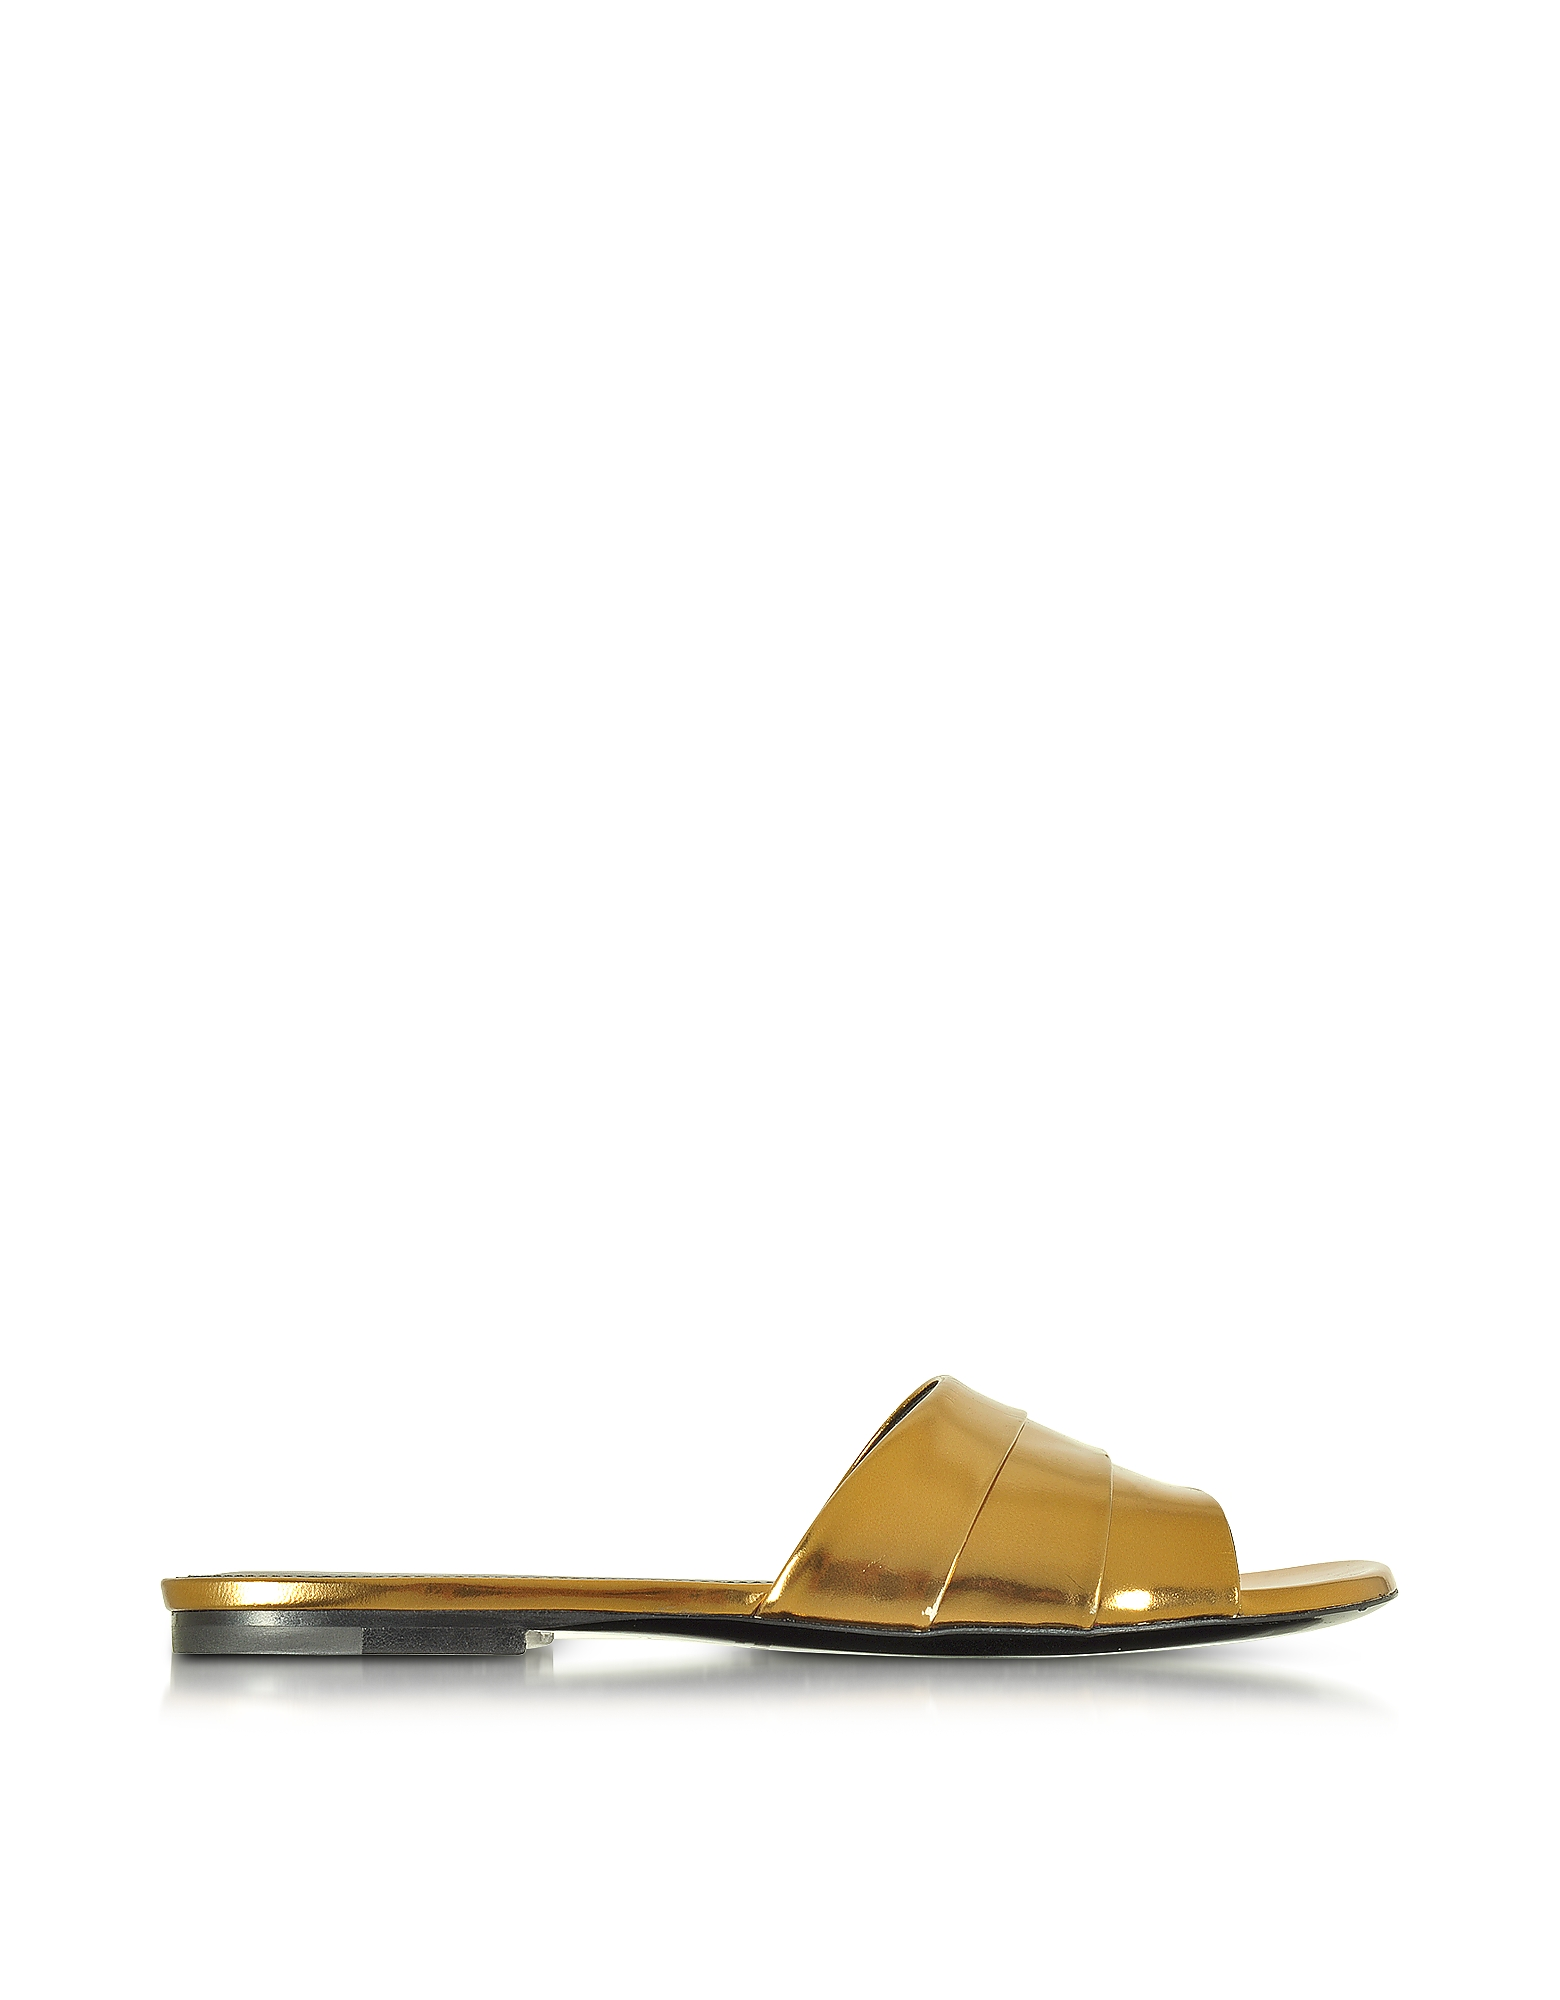 Jil Sander Shoes, Laminated Leather Flat Slide